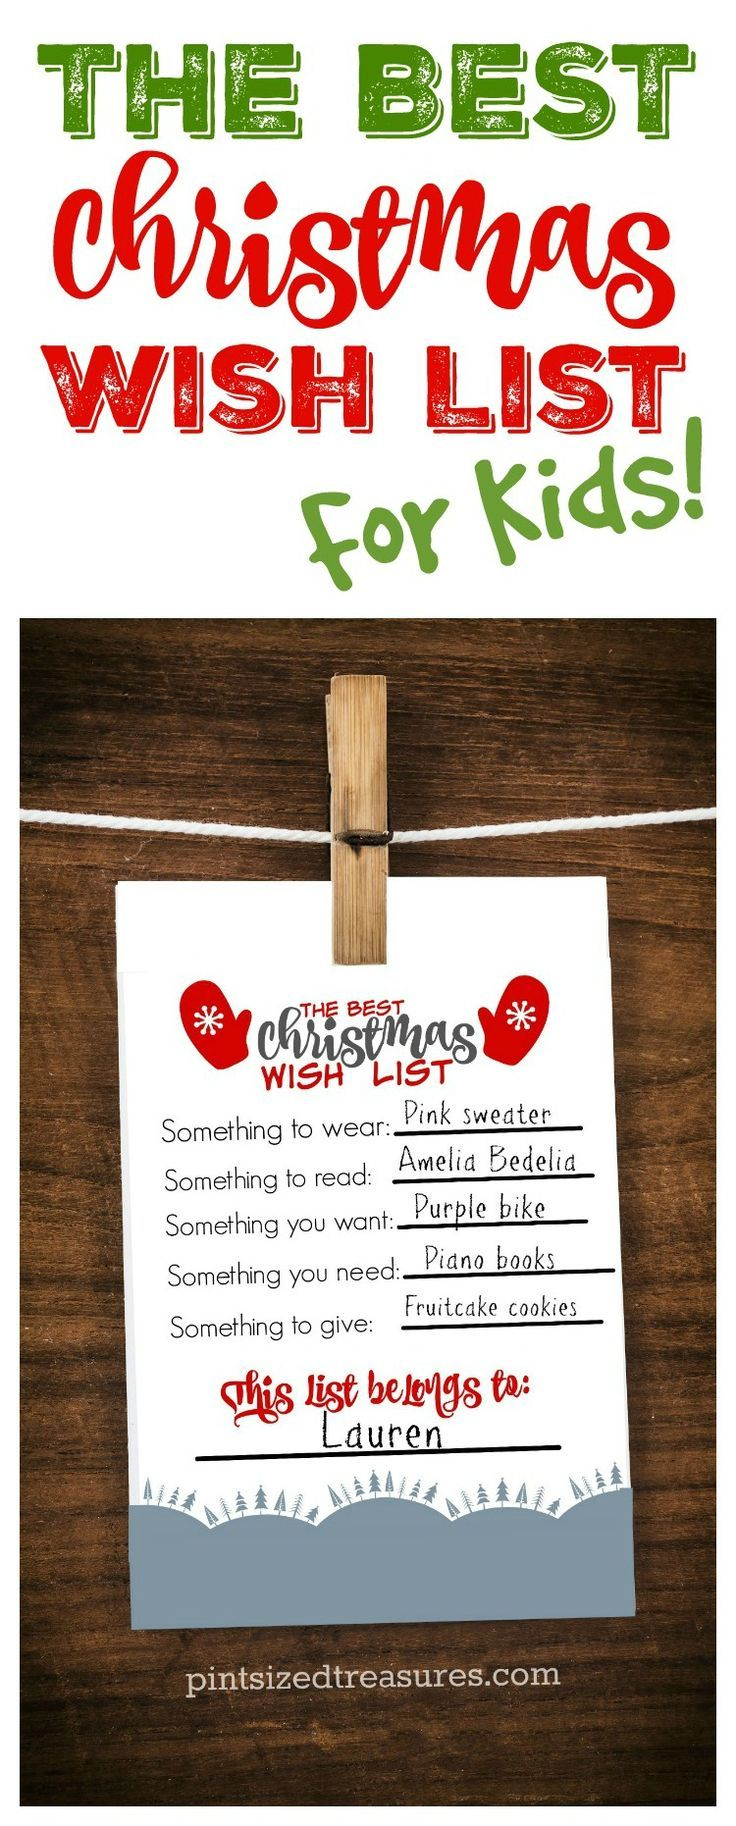 Encourage kids to be thoughtful this year in their Christmas wish list adventures! Check out this adorable printable that parents AND kids love! Print it out, fill it out and hand it on your fridge! It's cute enough to frame as well as a keepsake!